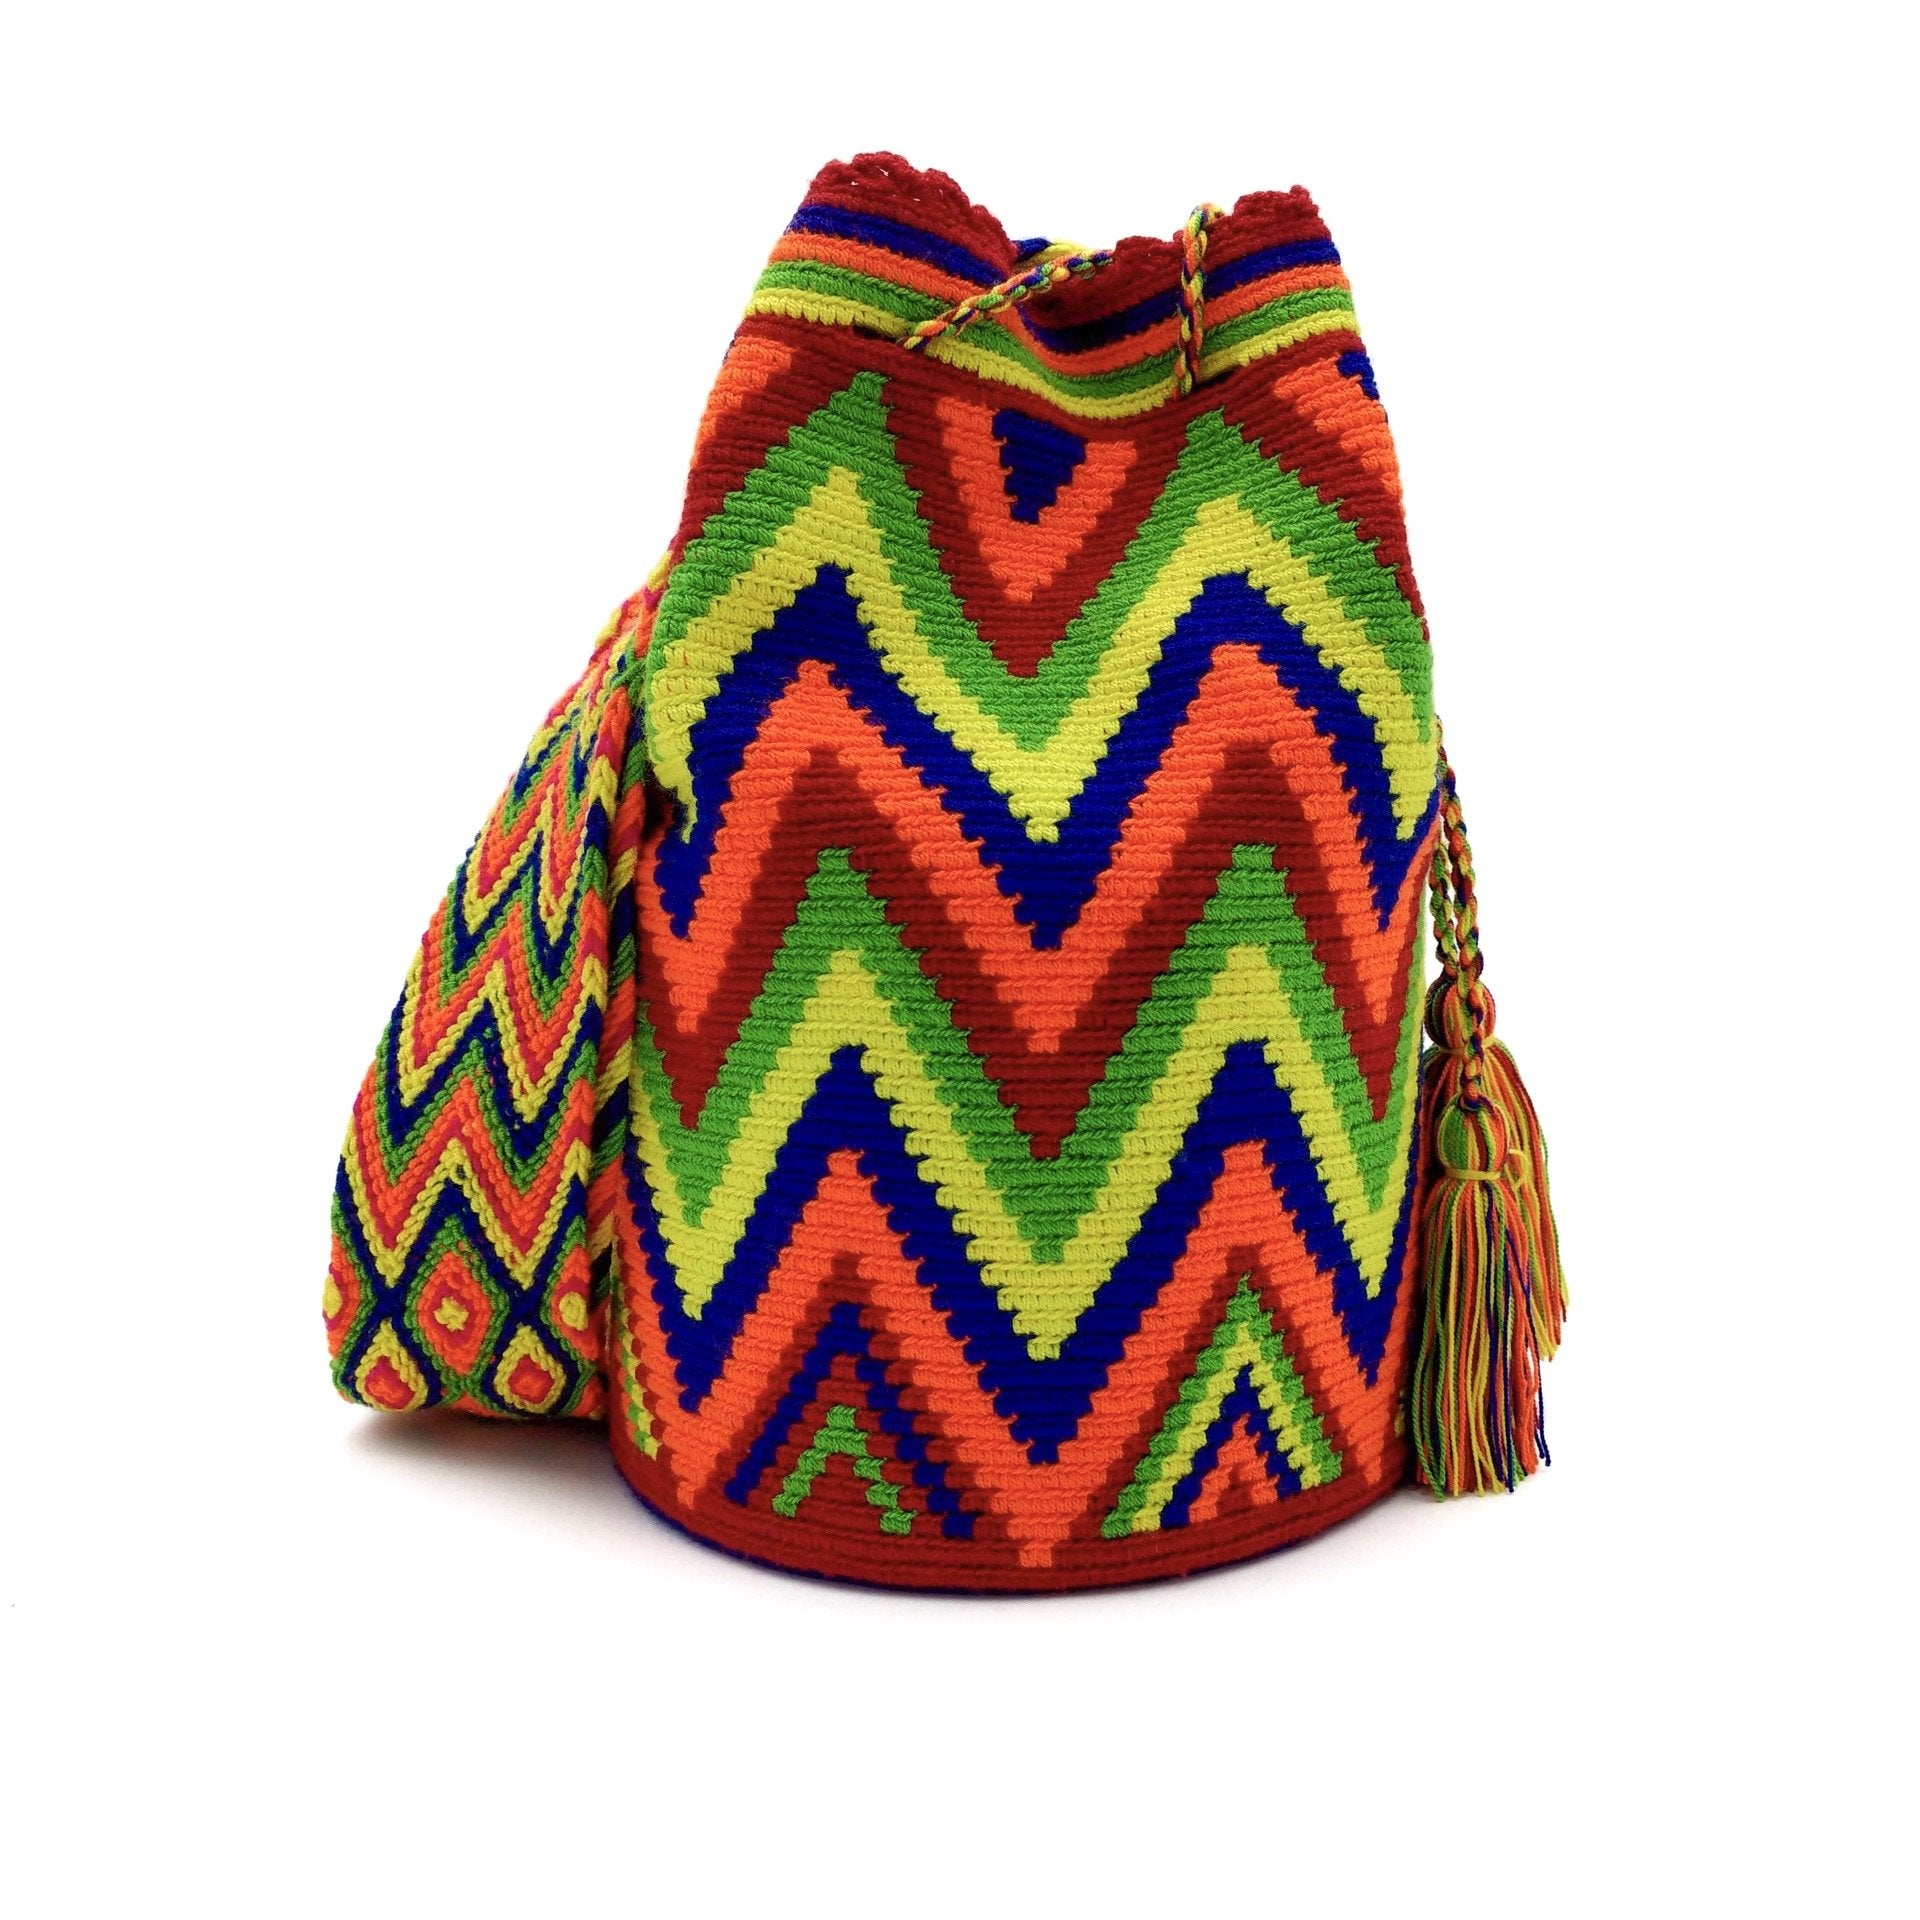 Front view of a beautiful Wayuu Mochila Bag with vibrant colors such as Light-Green, Navy-Blue, Hot-Orange, Red, and Yellow.